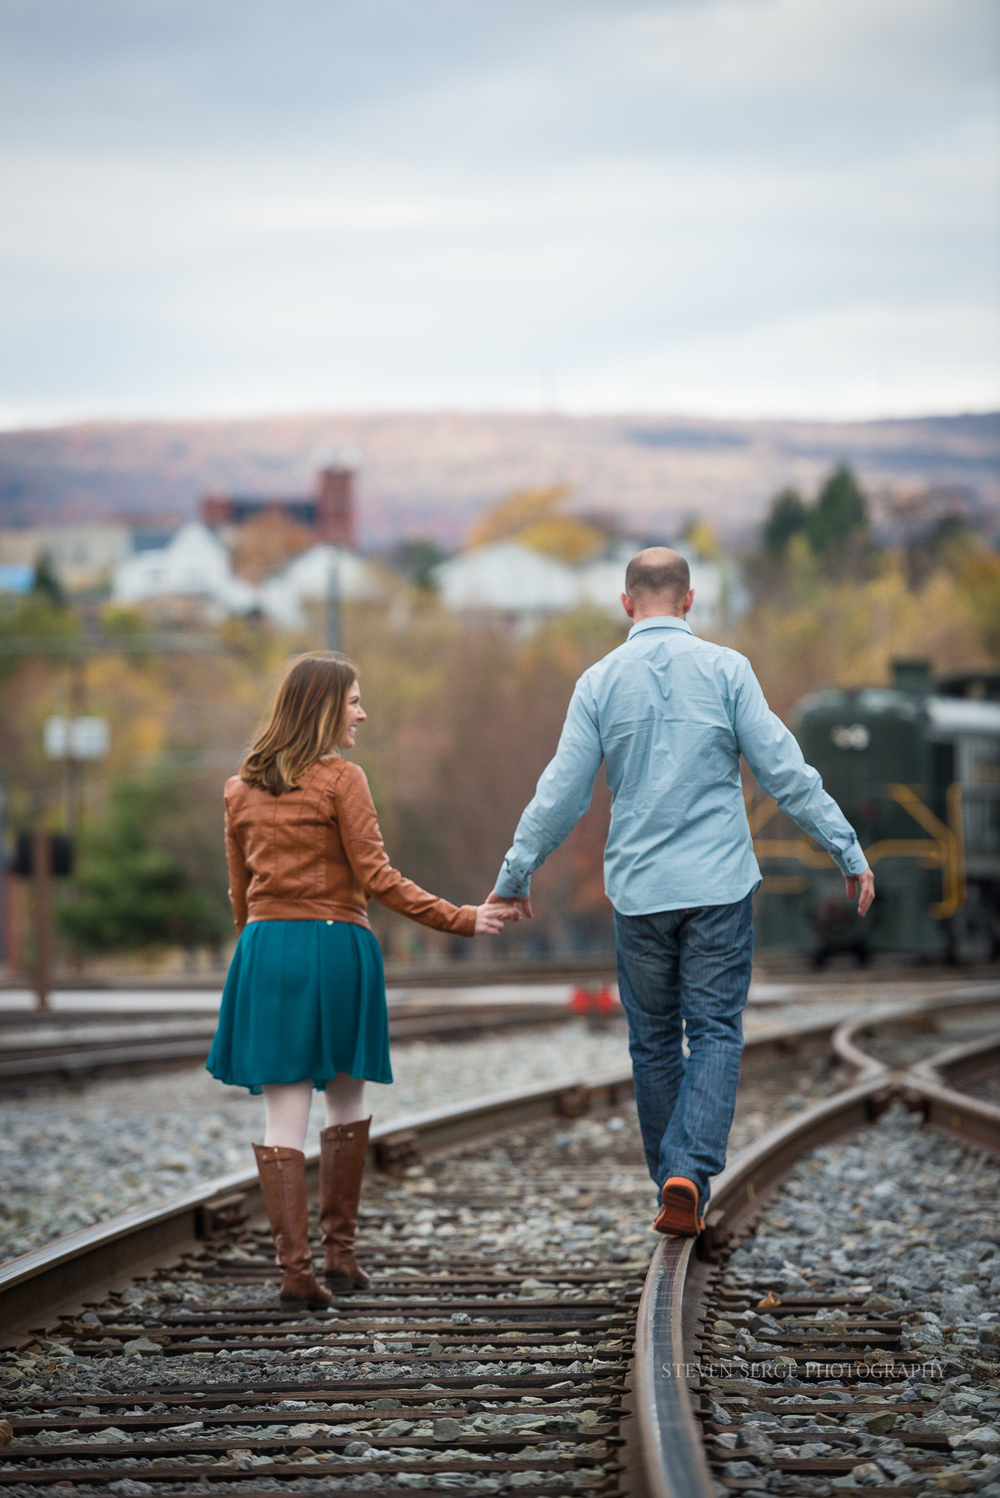 Aleine-Scranton-Engagement-Wedding-Nepa-Photographer-Steamtown-Photography-7.jpg